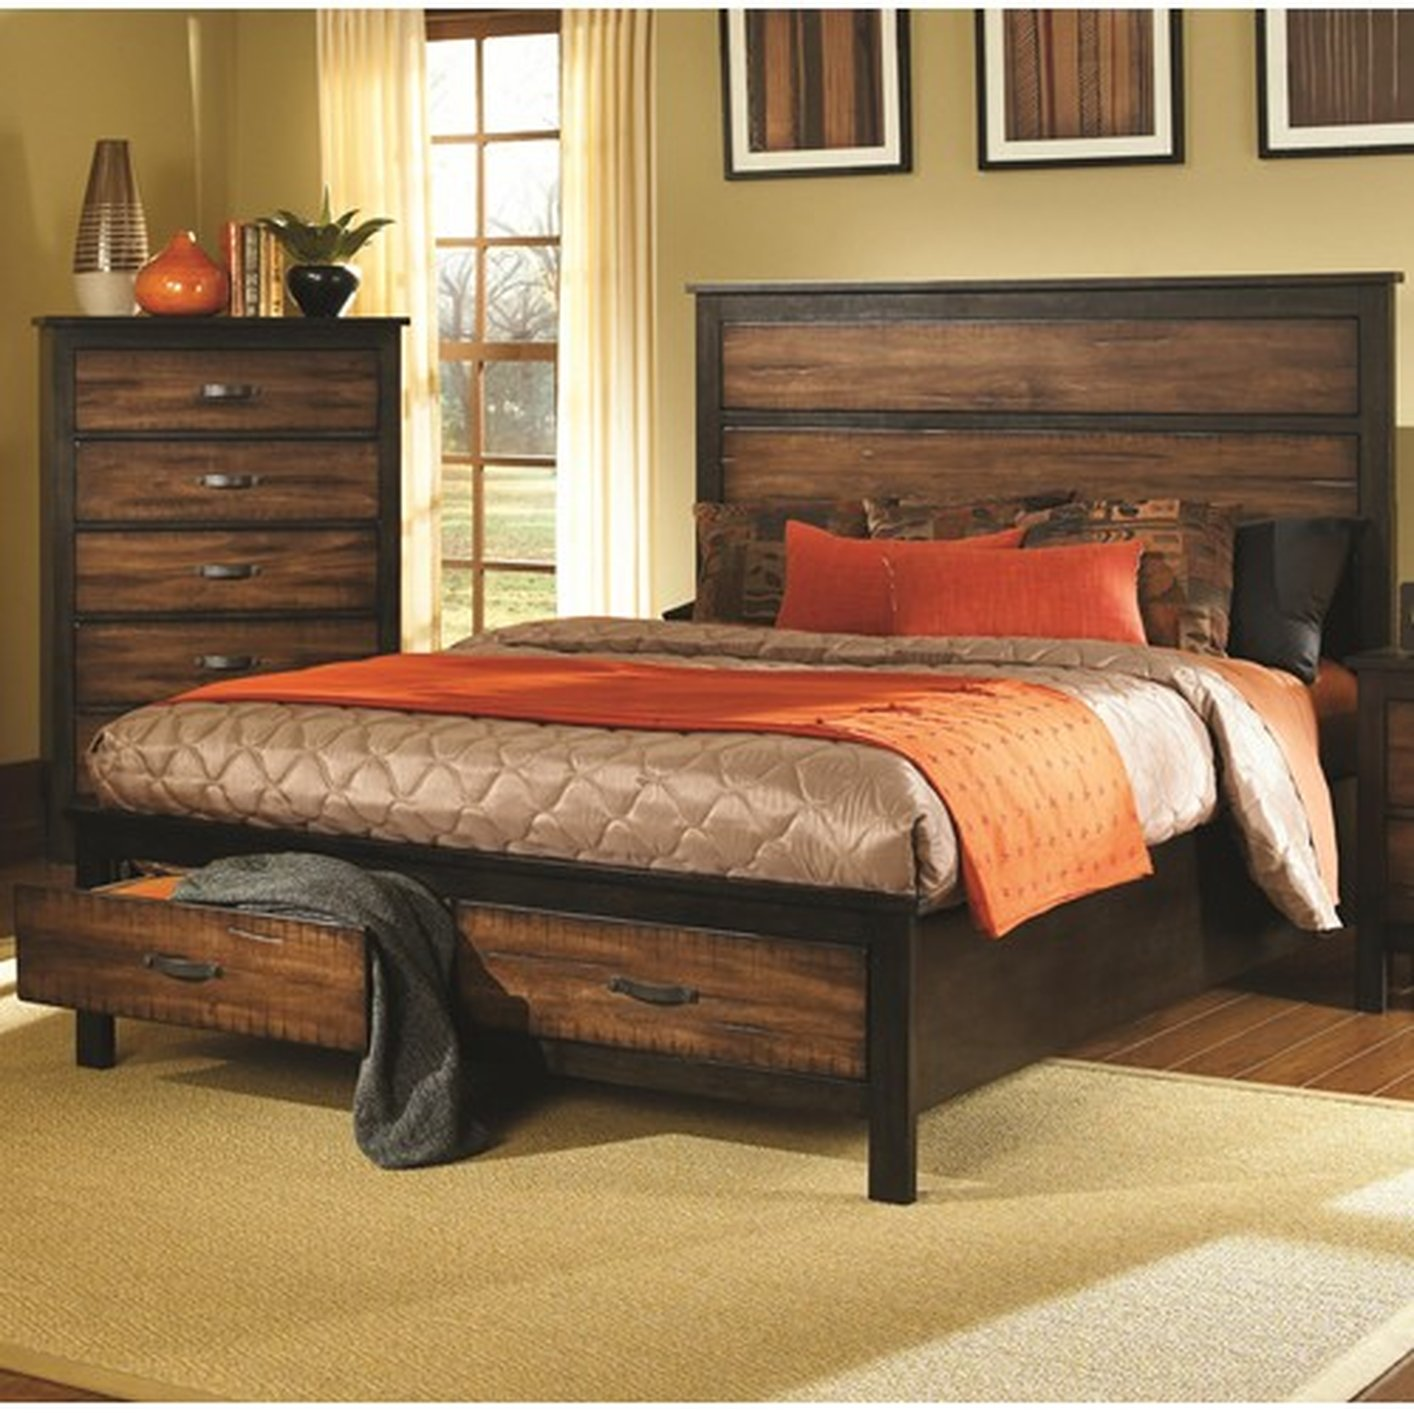 sleigh california affordable bed sets cal king inspirational best for sale frame bedroomcalifornia size upholstered full of bedroom